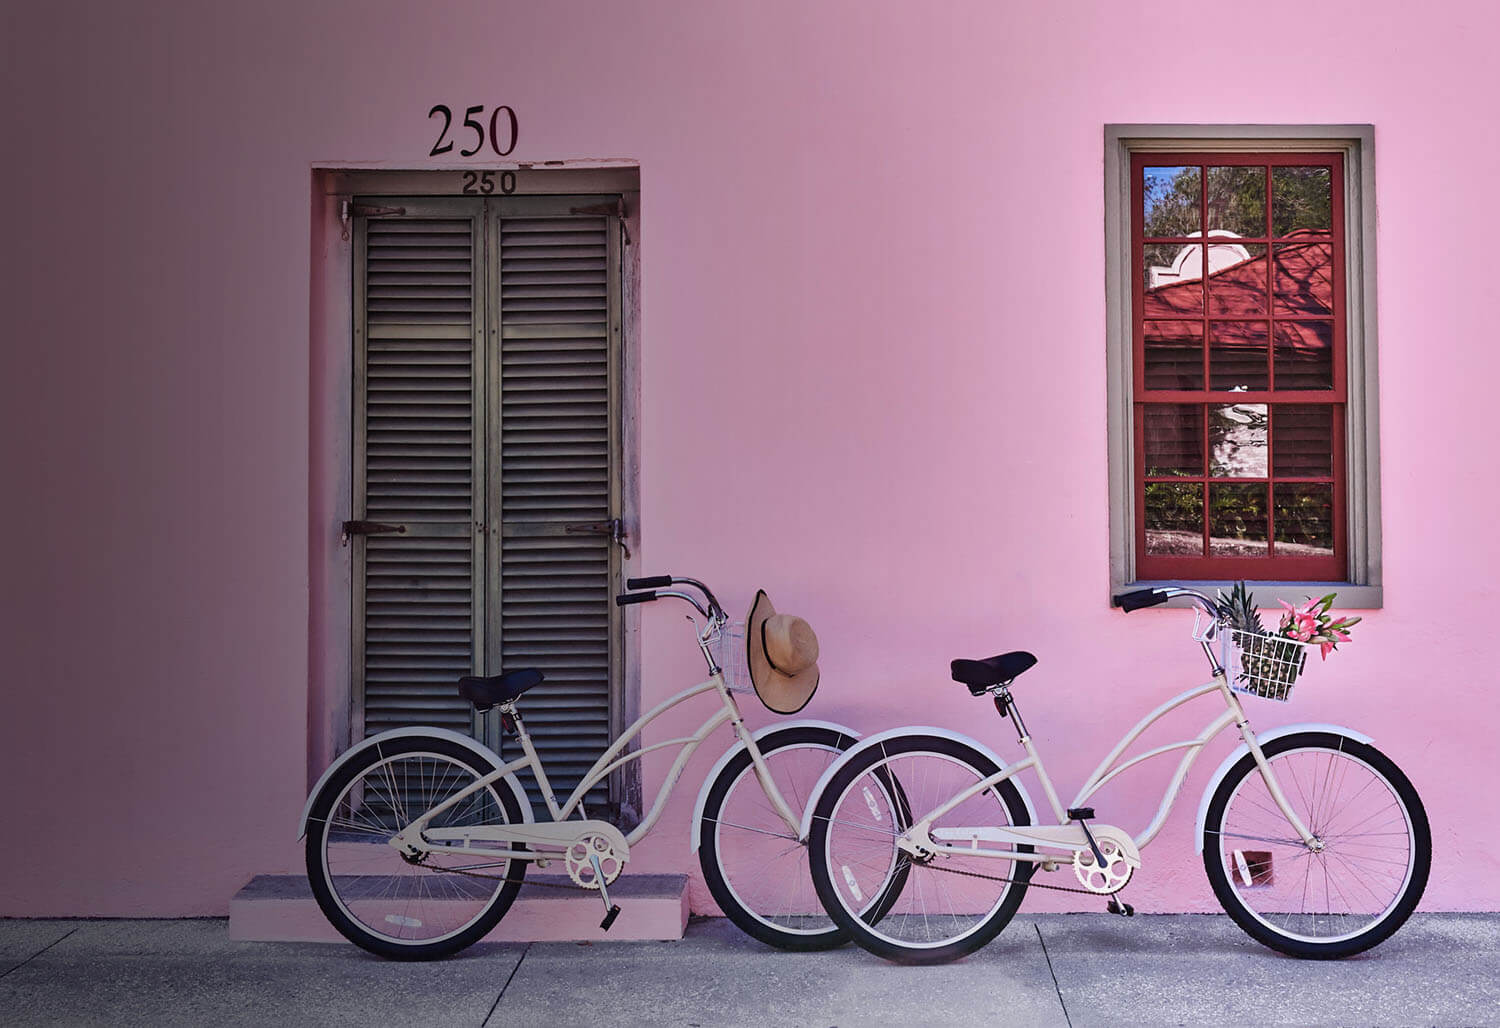 two white bikes parked outside a bright pink building